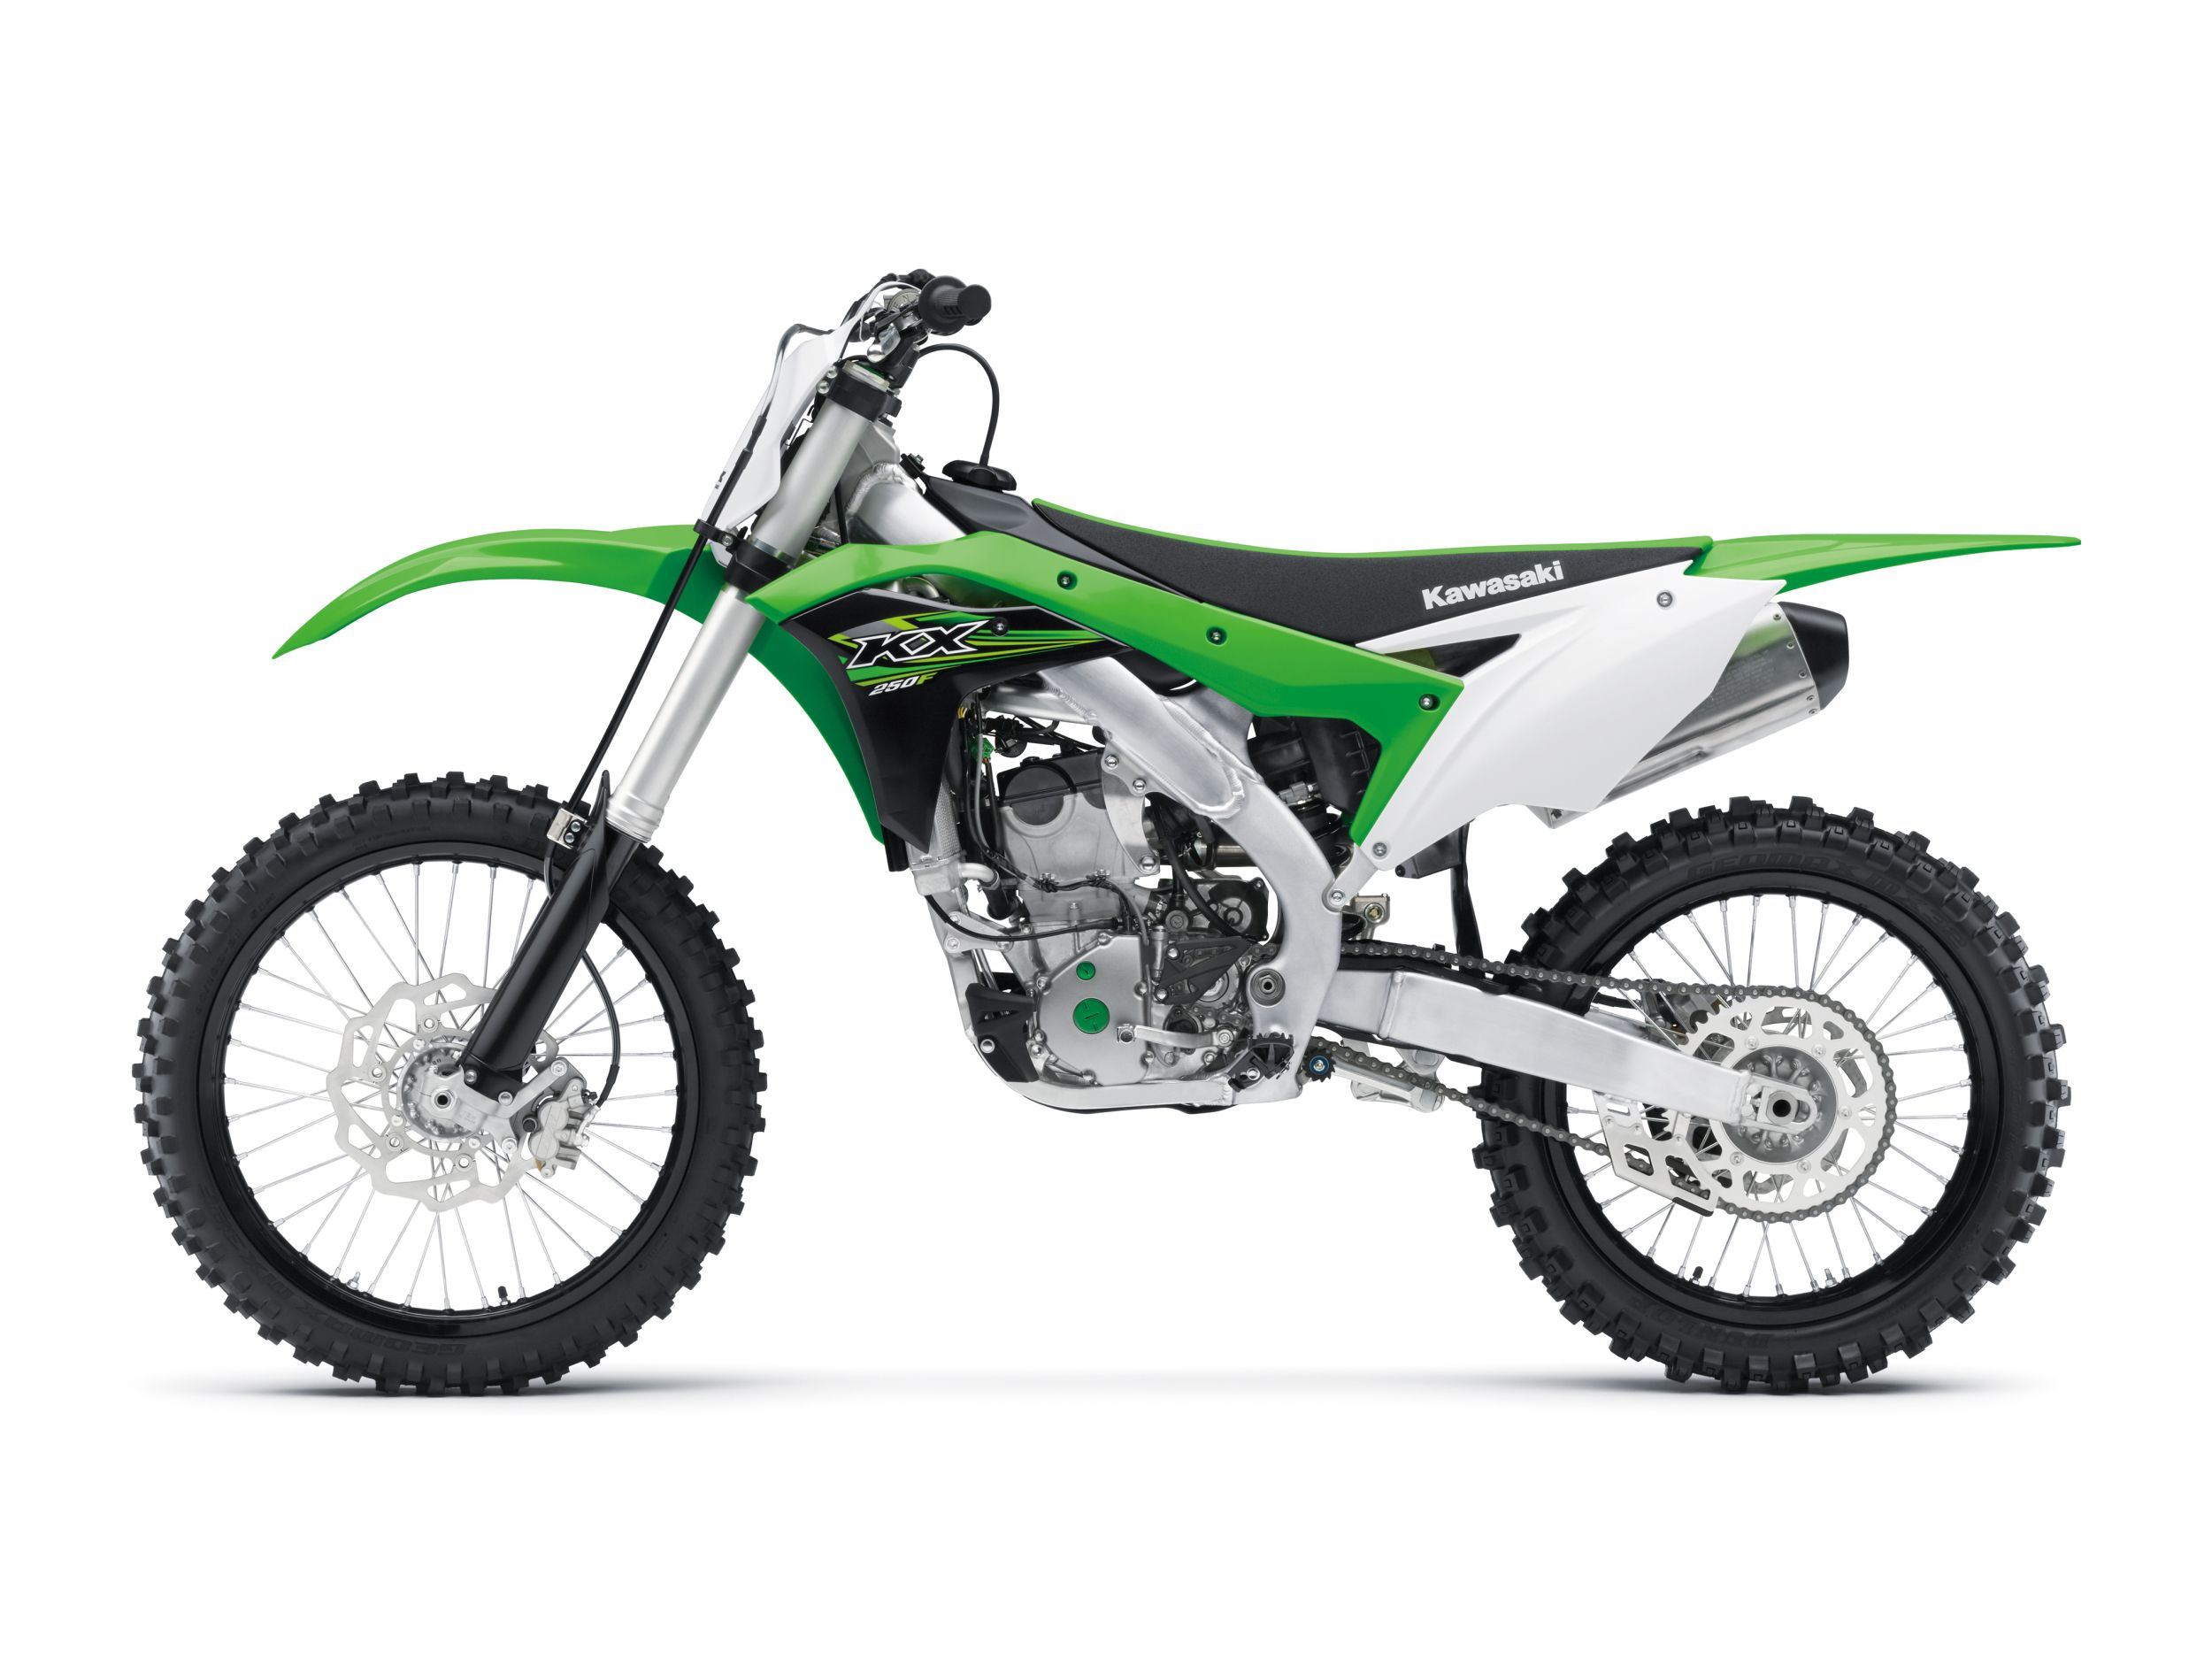 gebrauchte kawasaki kx 250f motorr der kaufen. Black Bedroom Furniture Sets. Home Design Ideas